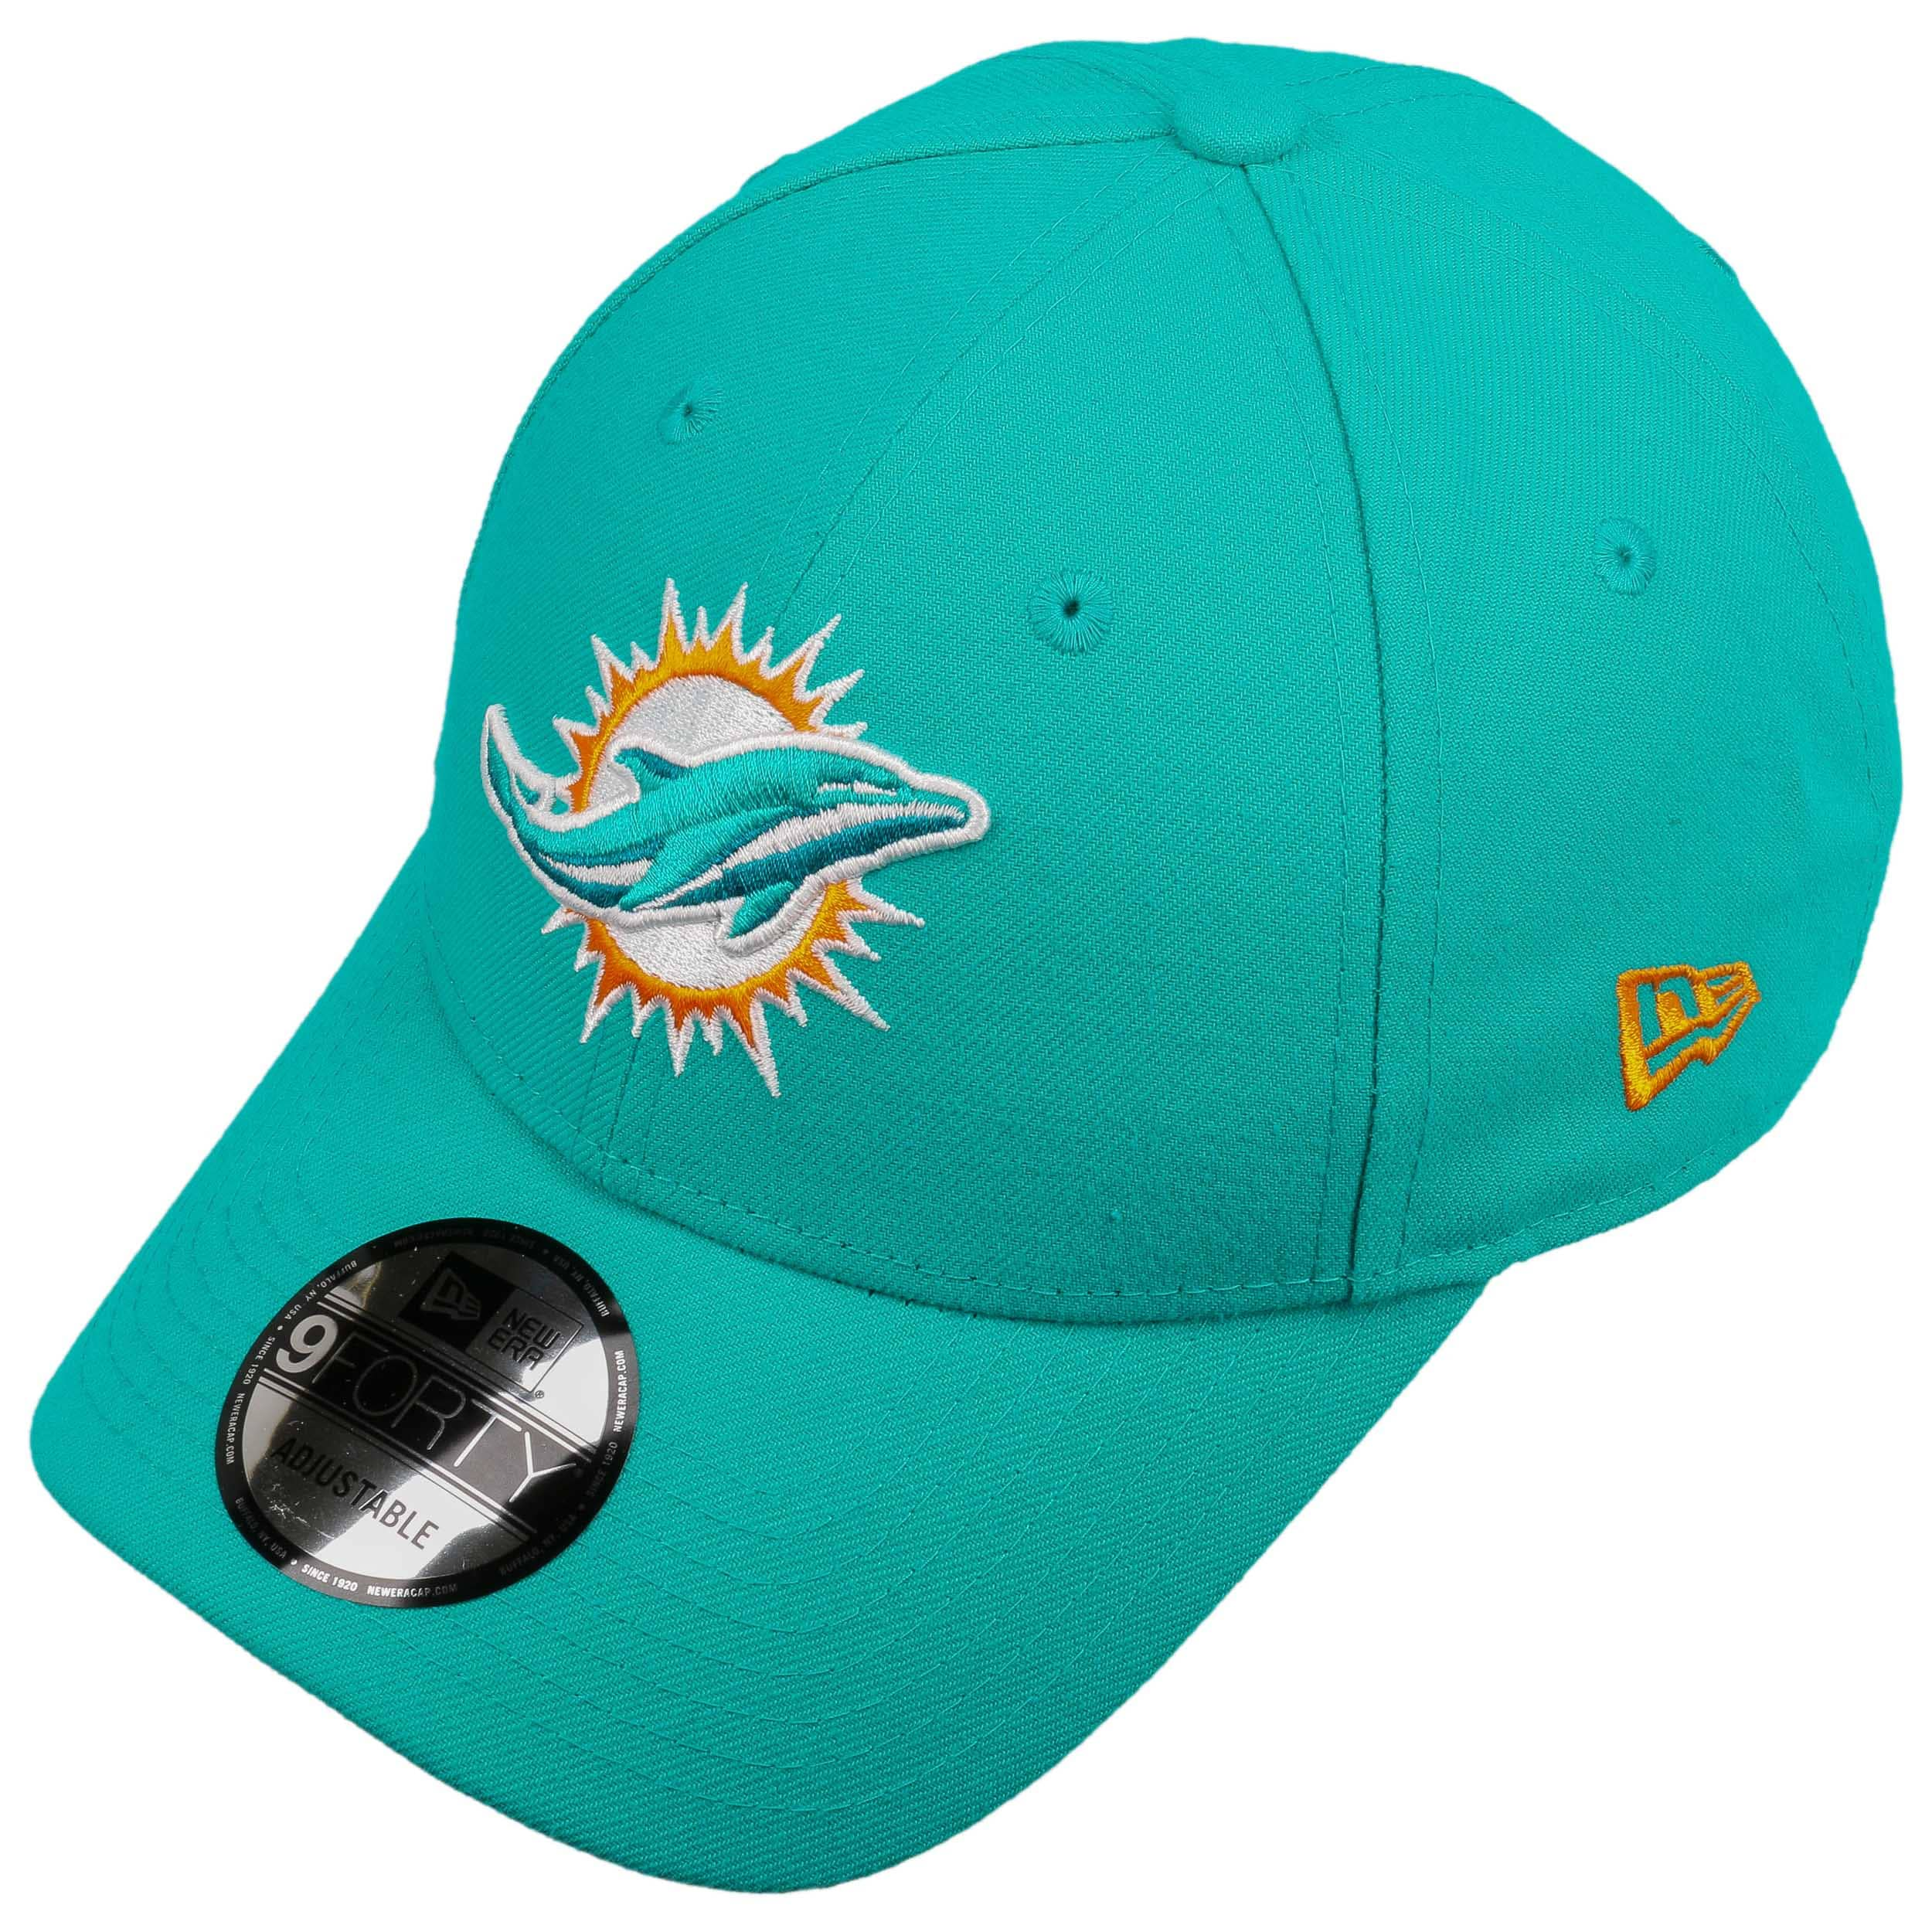 9Forty The League Dolphins Cap by New Era - turquoise 1 ... 8194b461b9e